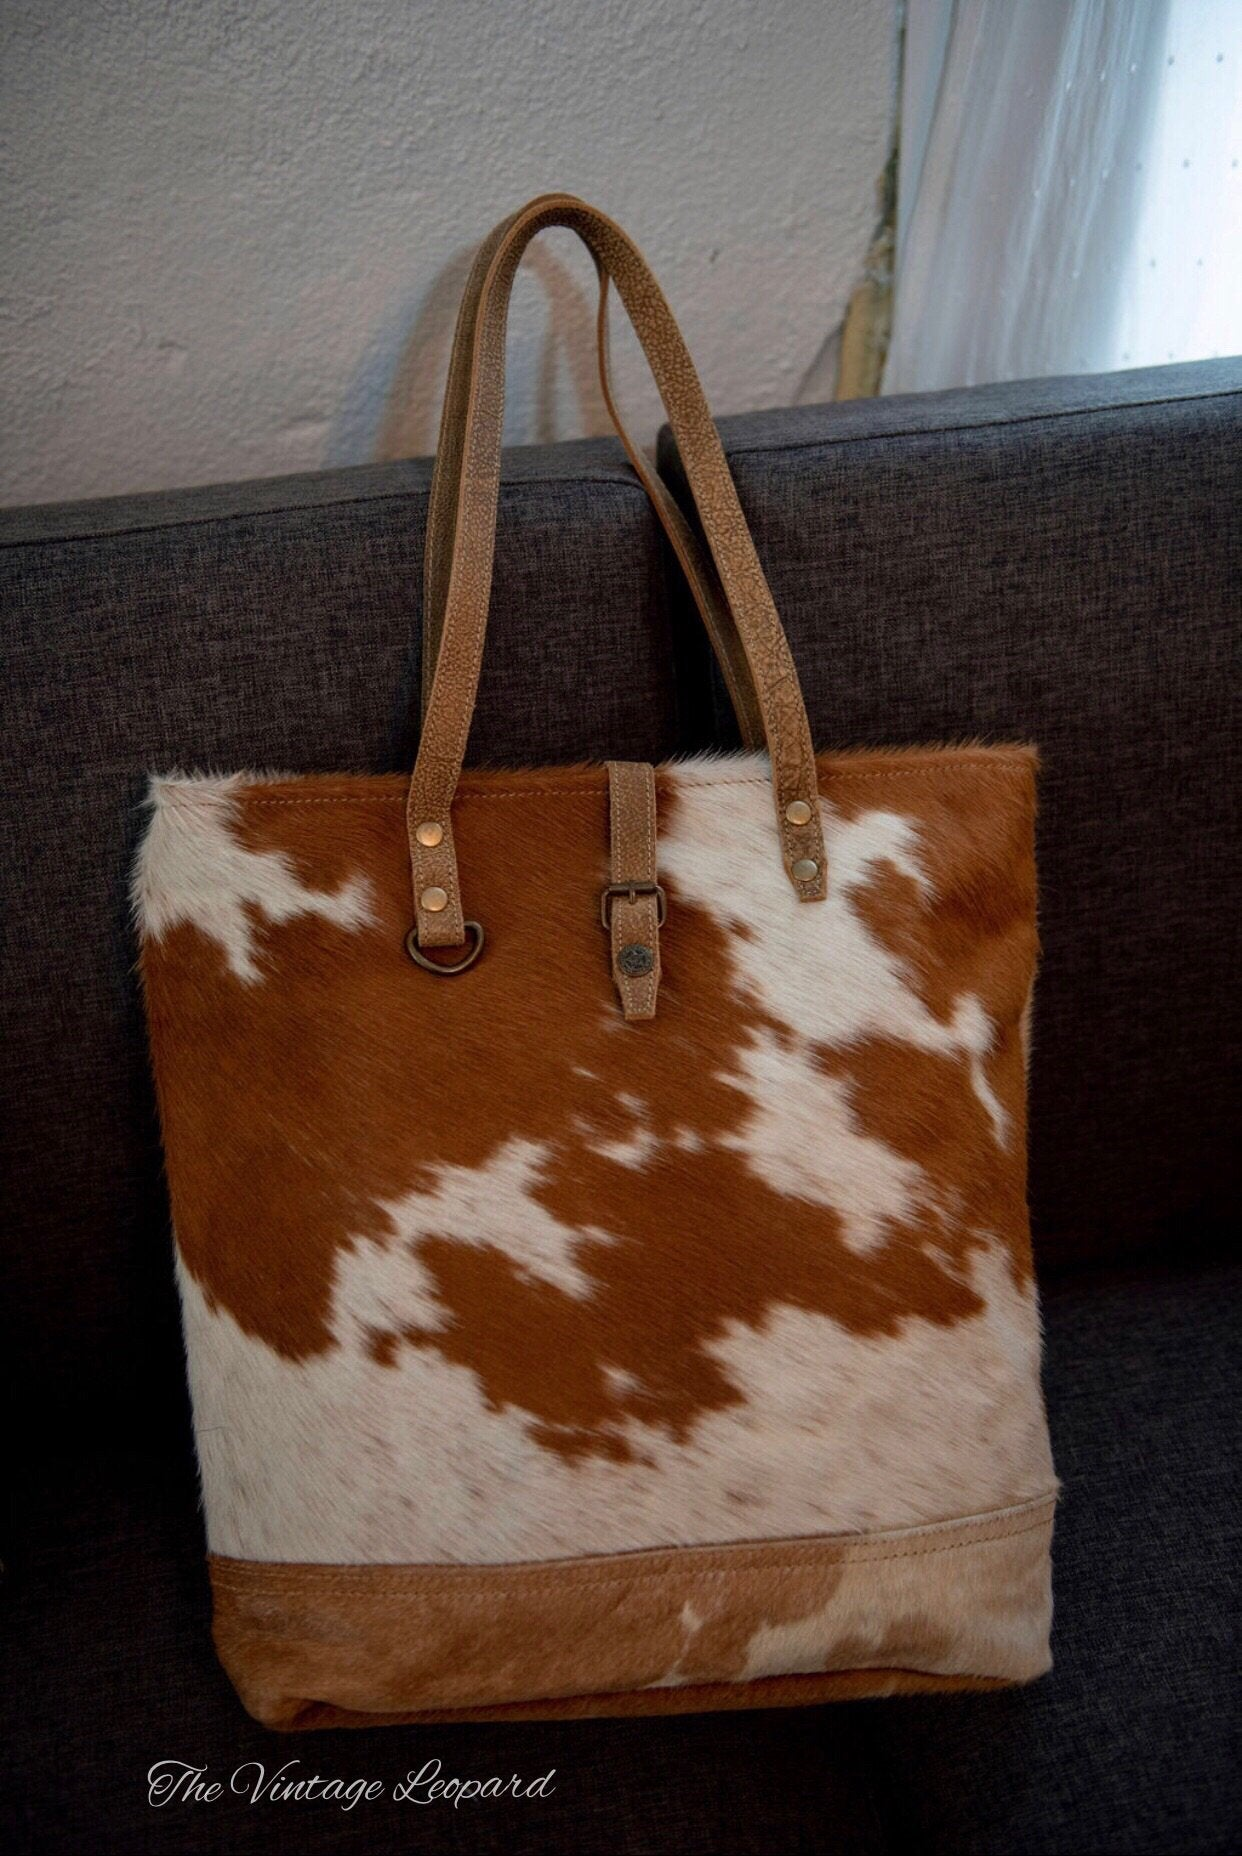 Myra Cowhide Leather Chestnut Tote Bag The Vintage Leopard Every #bag is truly handcrafted with spirit of vintage, ethnic and bold look. myra cowhide leather chestnut tote bag